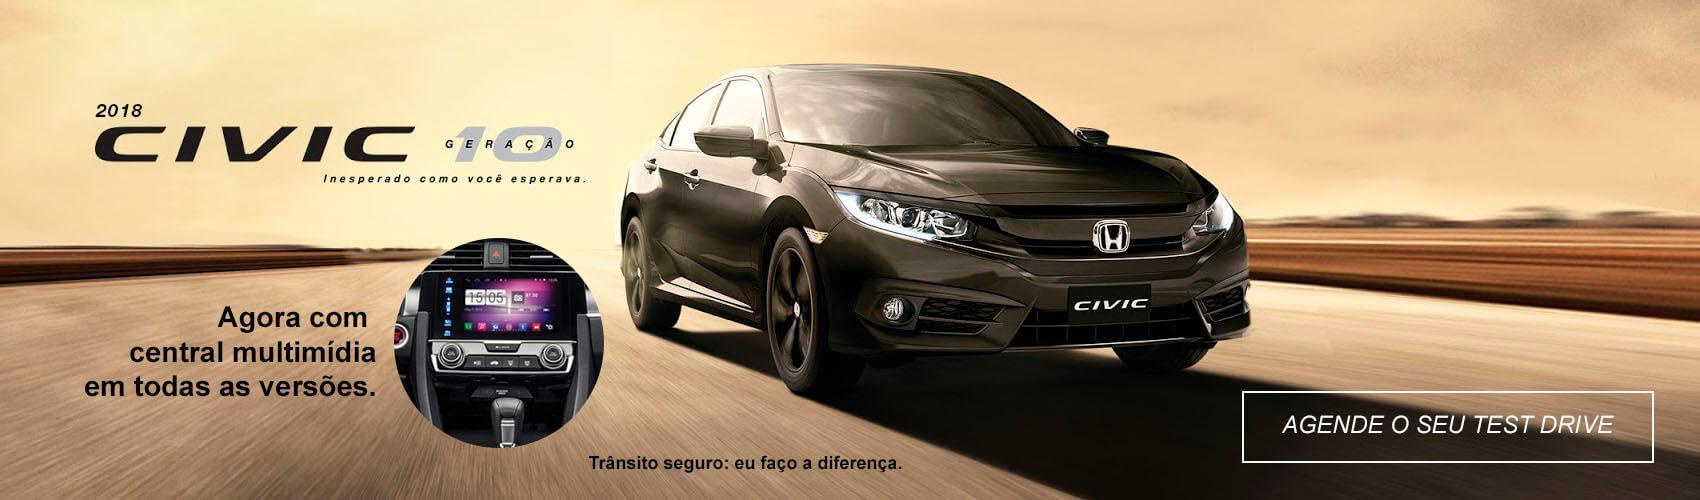 Civic 2018. Consórcio Honda Dealer